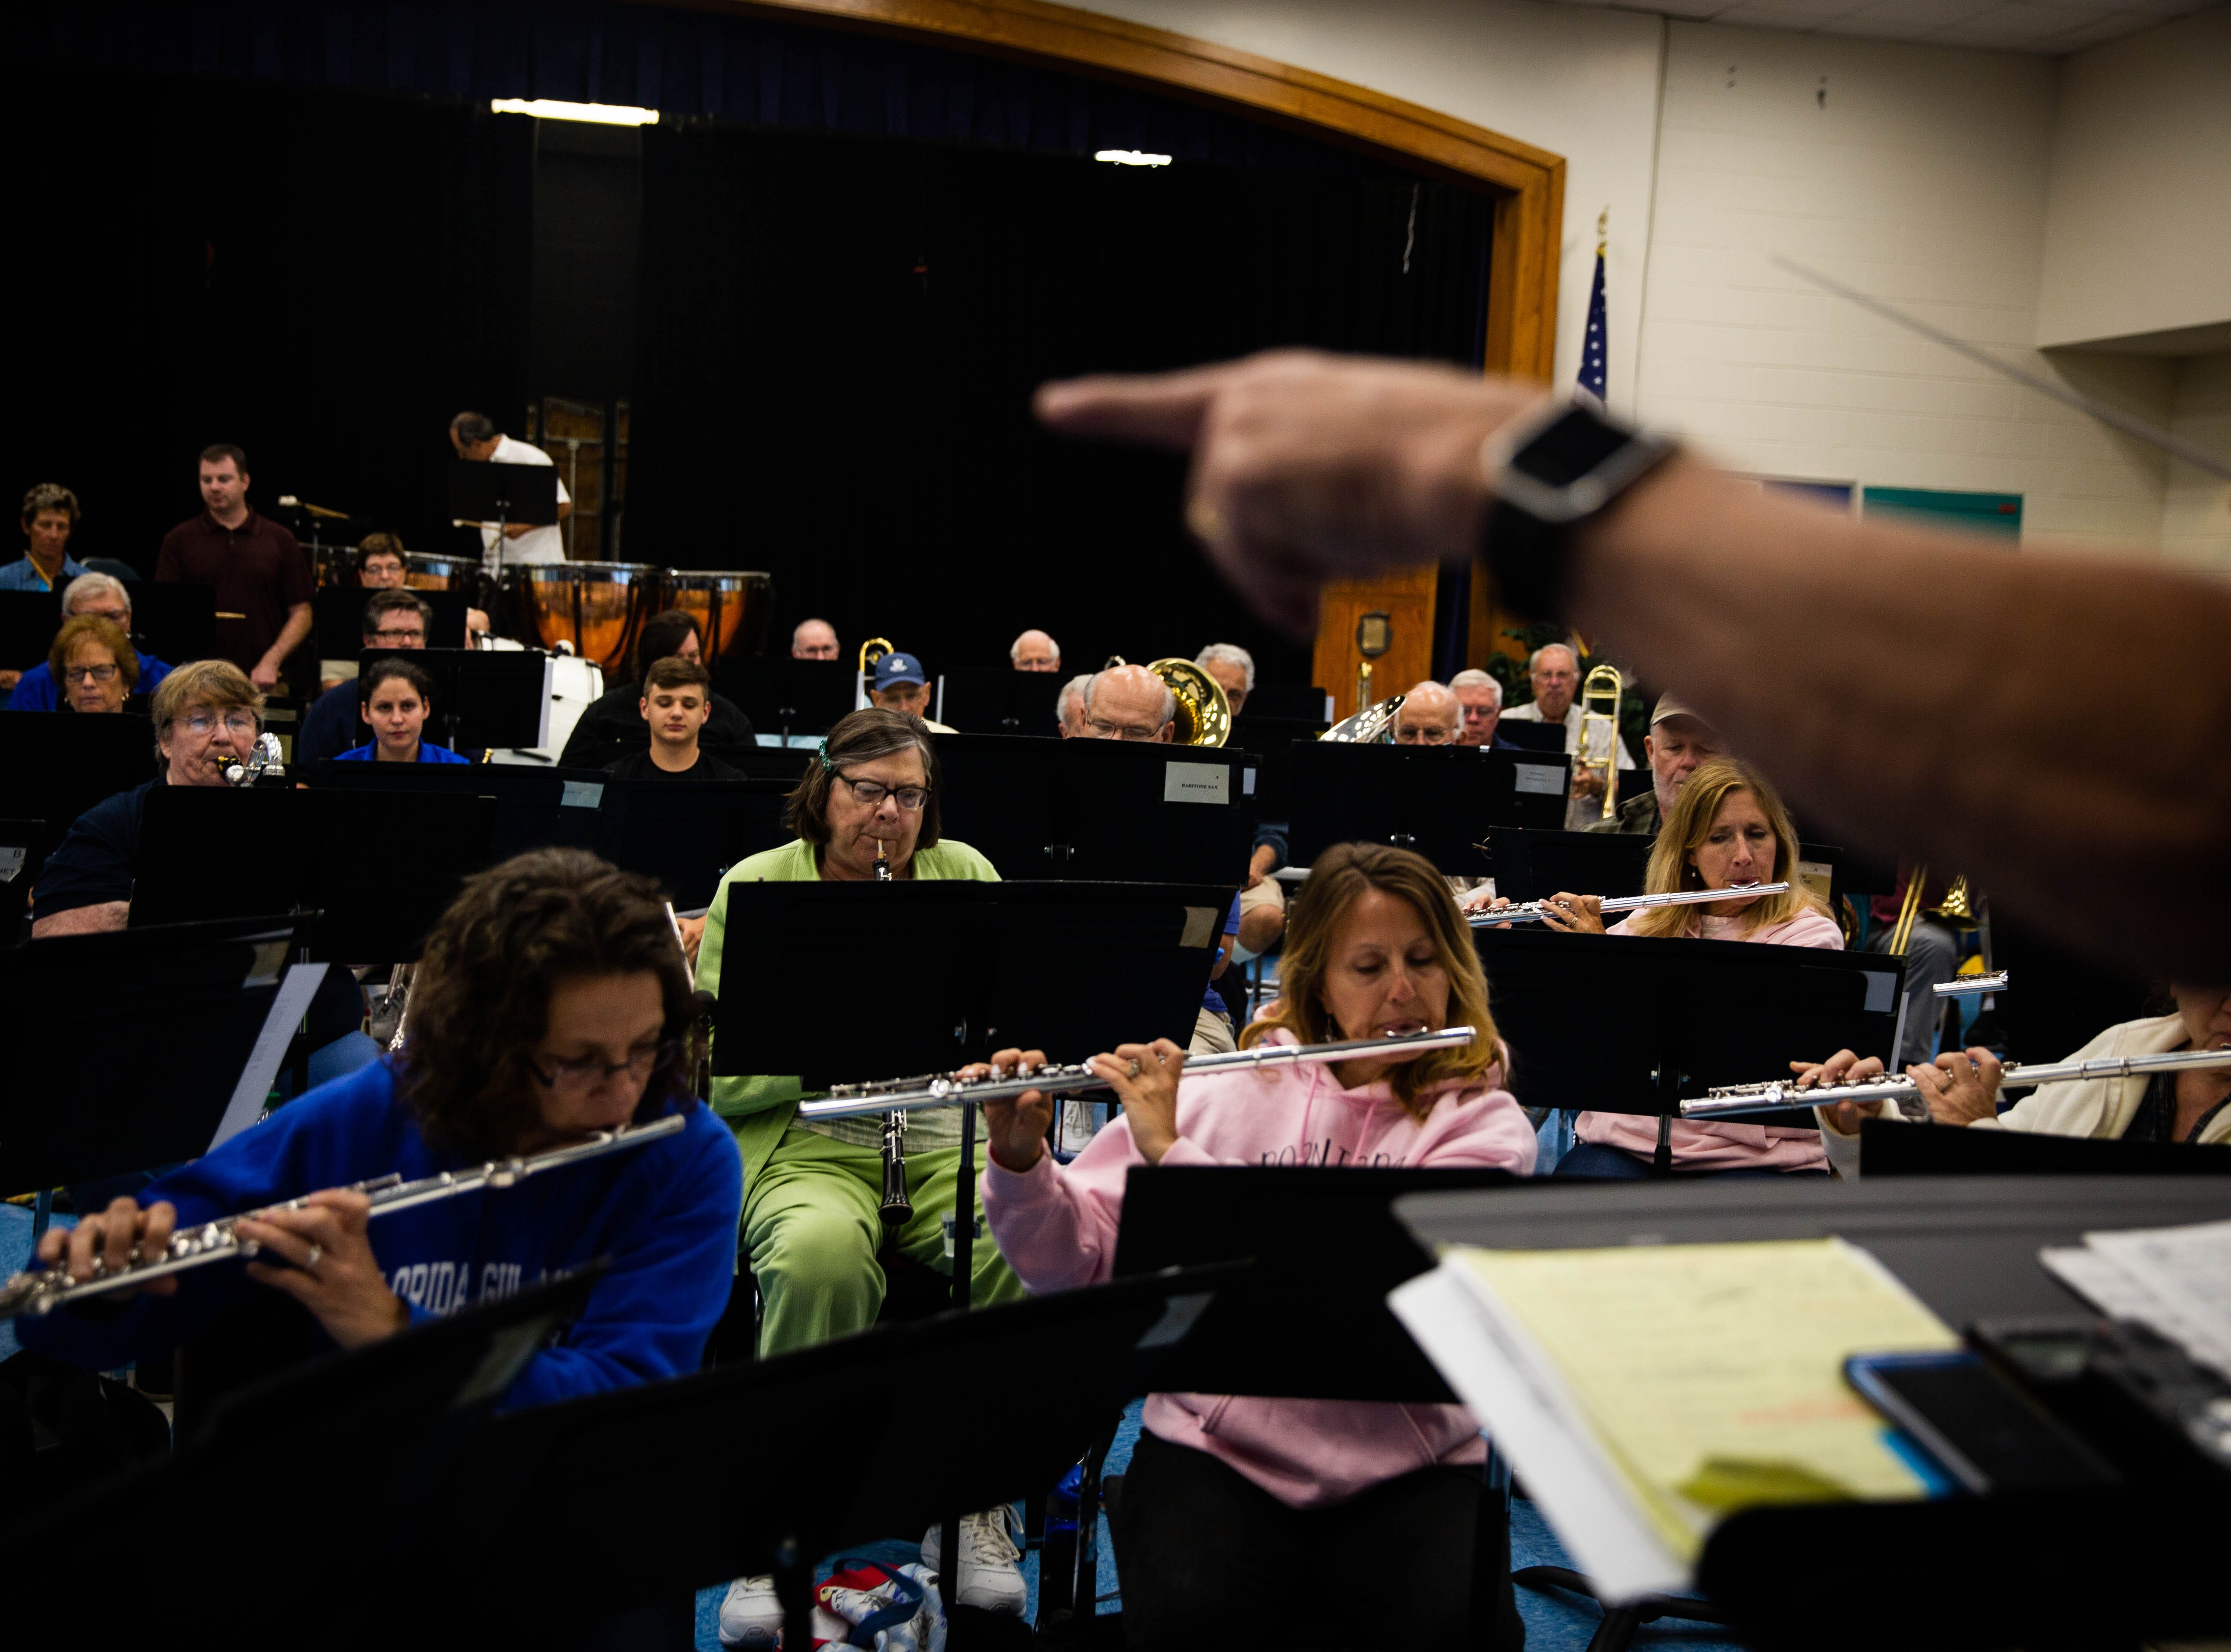 Conductor Harris Lanzel leads the Naples Concert Band practice at Gulfview Middle School on April 9, 2019. This was the last practice they will have at the school, where they have been practicing for 40 years.